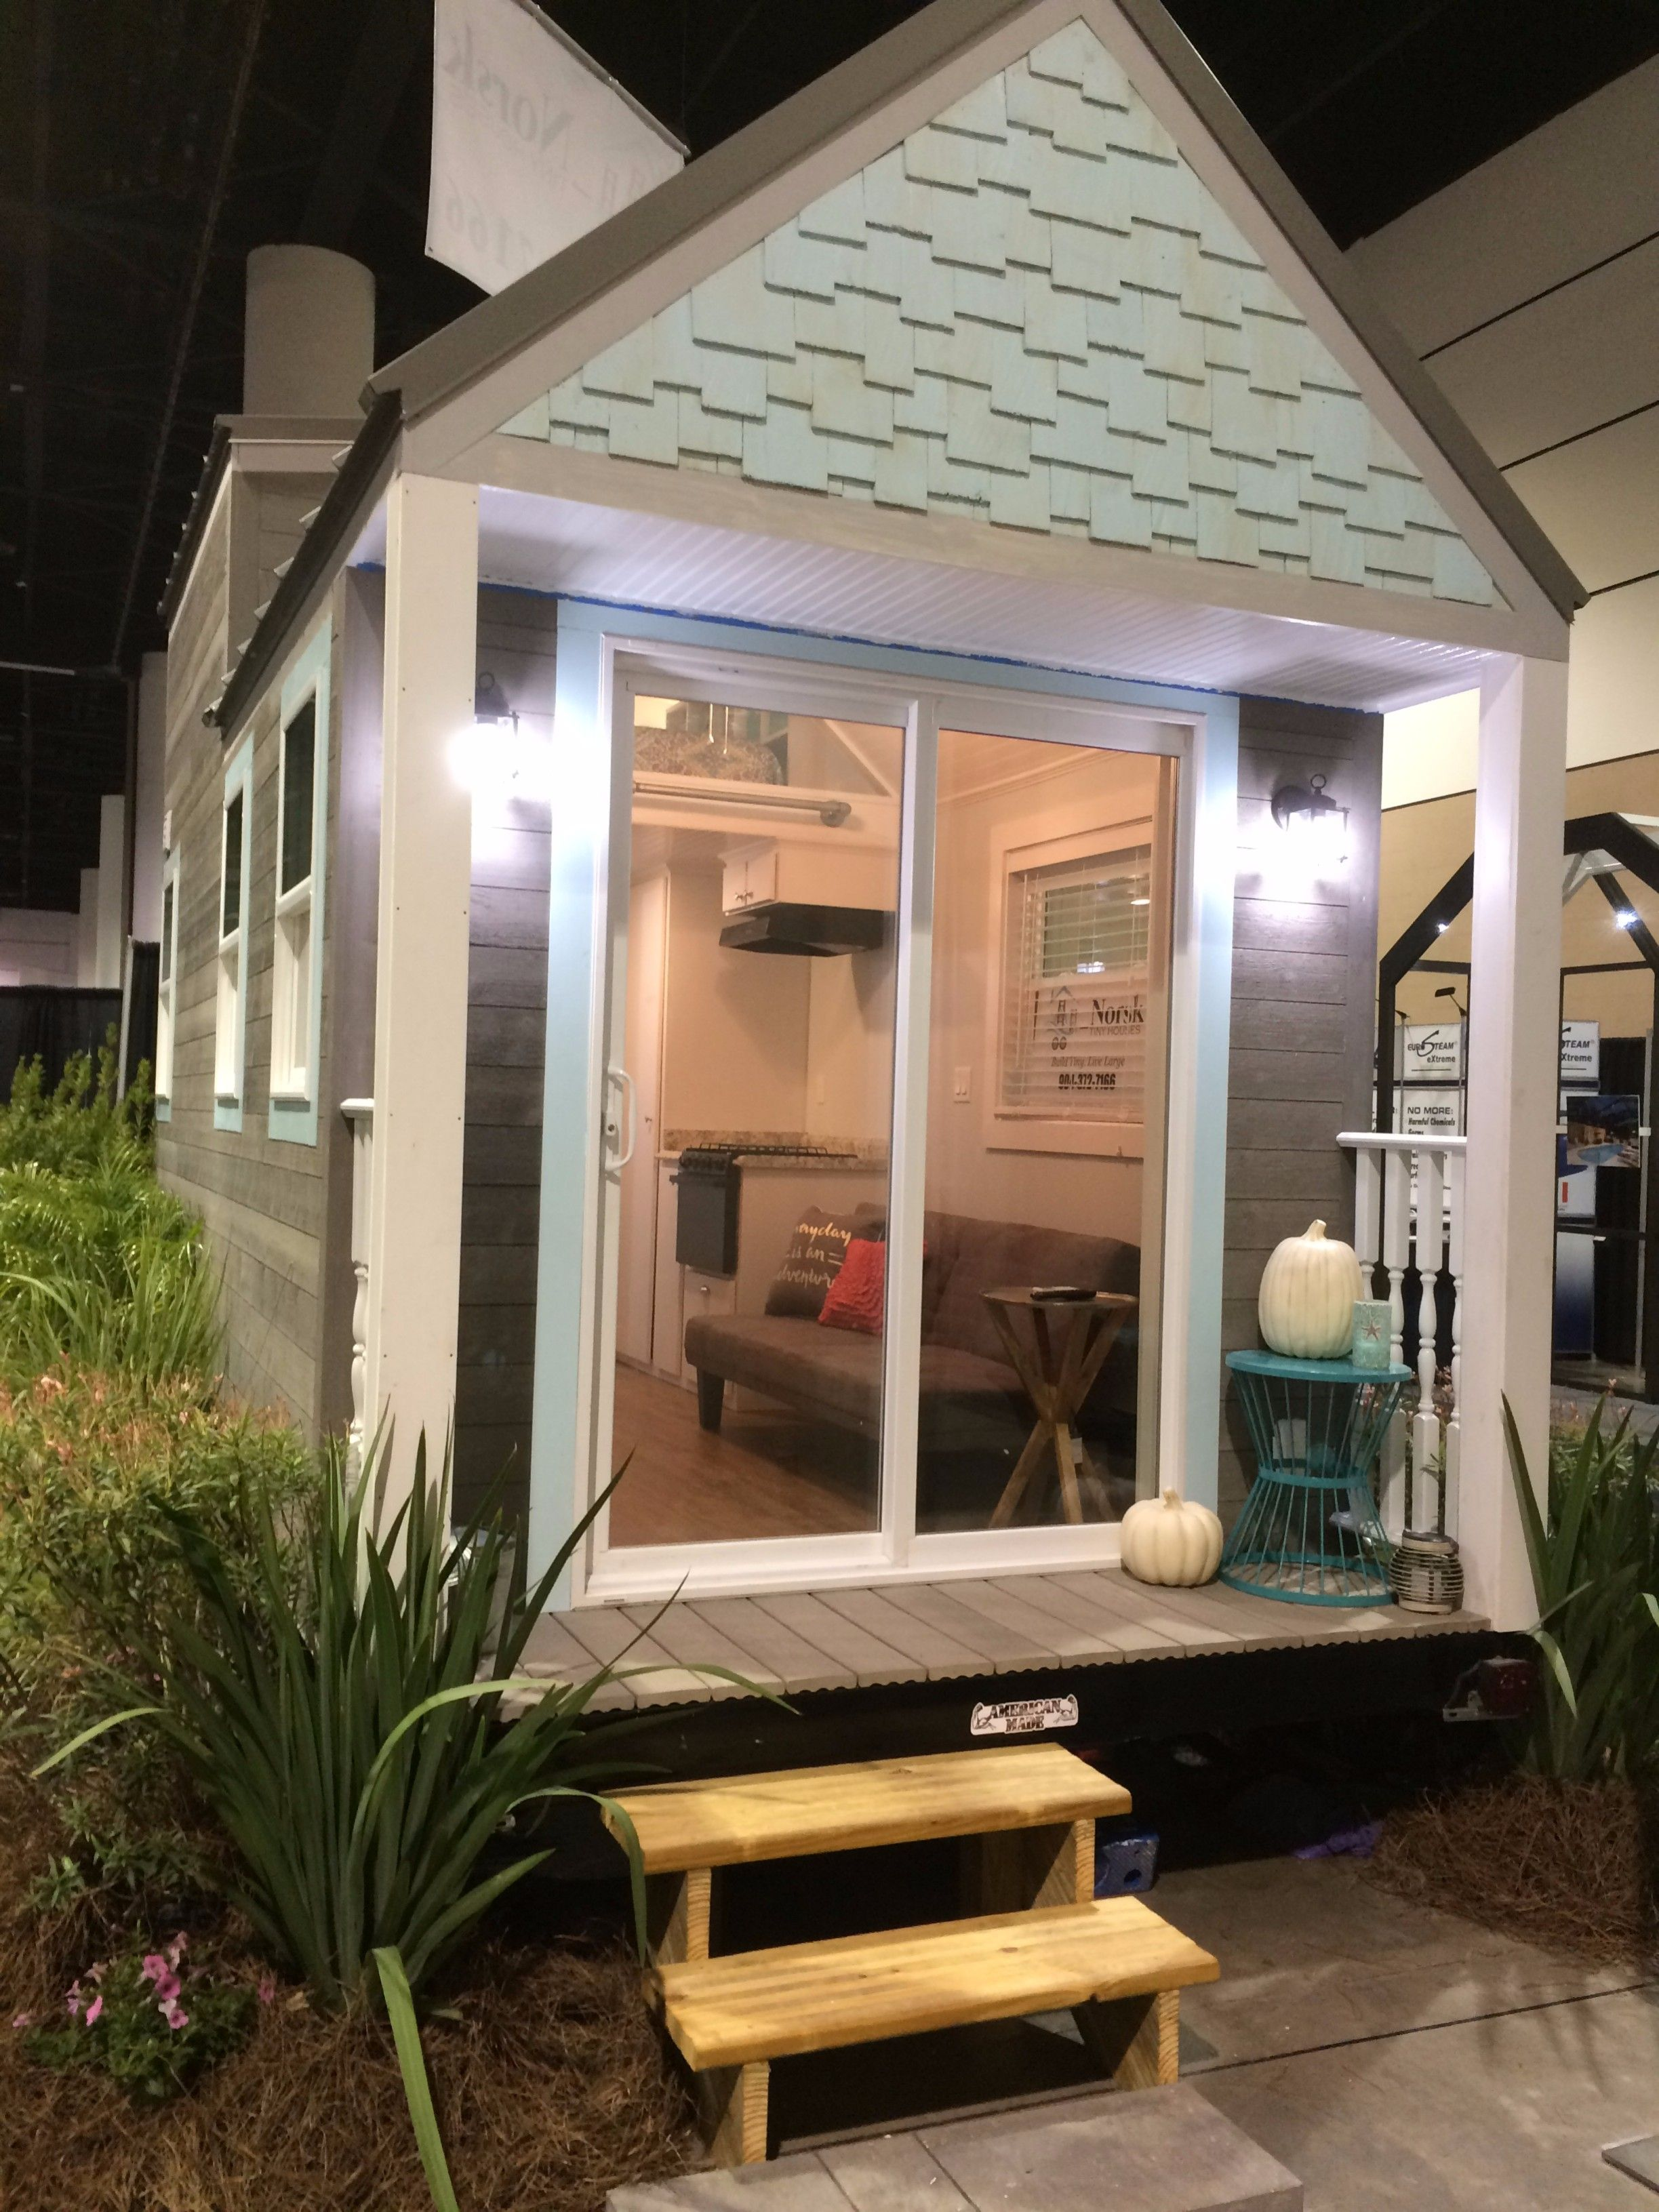 Tiny Houses For Sale Newsletter | Tiny house ideas | Tiny